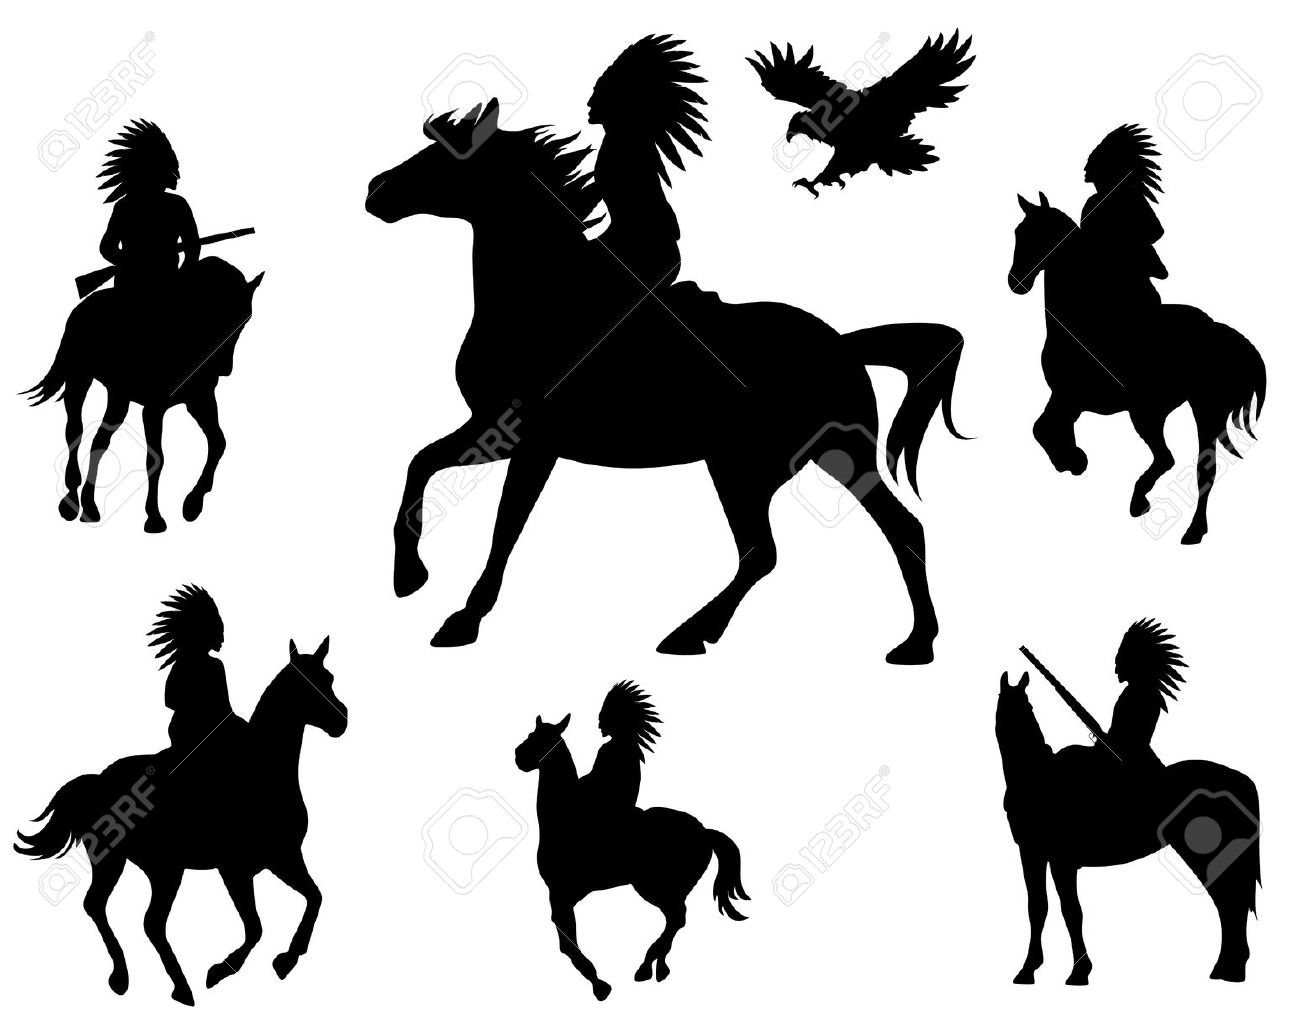 Indian On Horse Silhouette at GetDrawings.com.